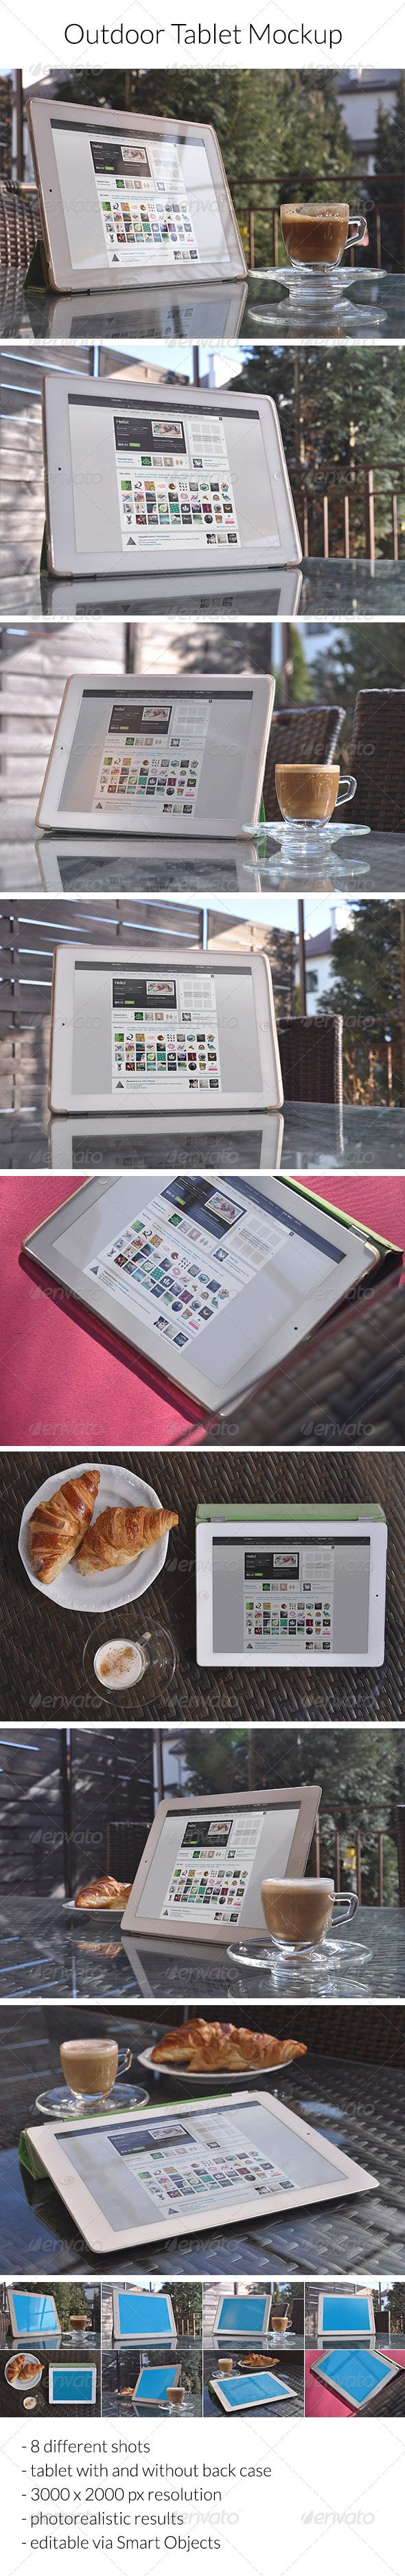 Photorealistic outdoor tablet mockup. 8 different shots in 1 PSD file – you place your design into a Smart Object just once and get as a result 8 views. Shots of iPad on rattan table with or without back case, with or without coffee and croissants. Just feel and show the pleasure of working outside ;)